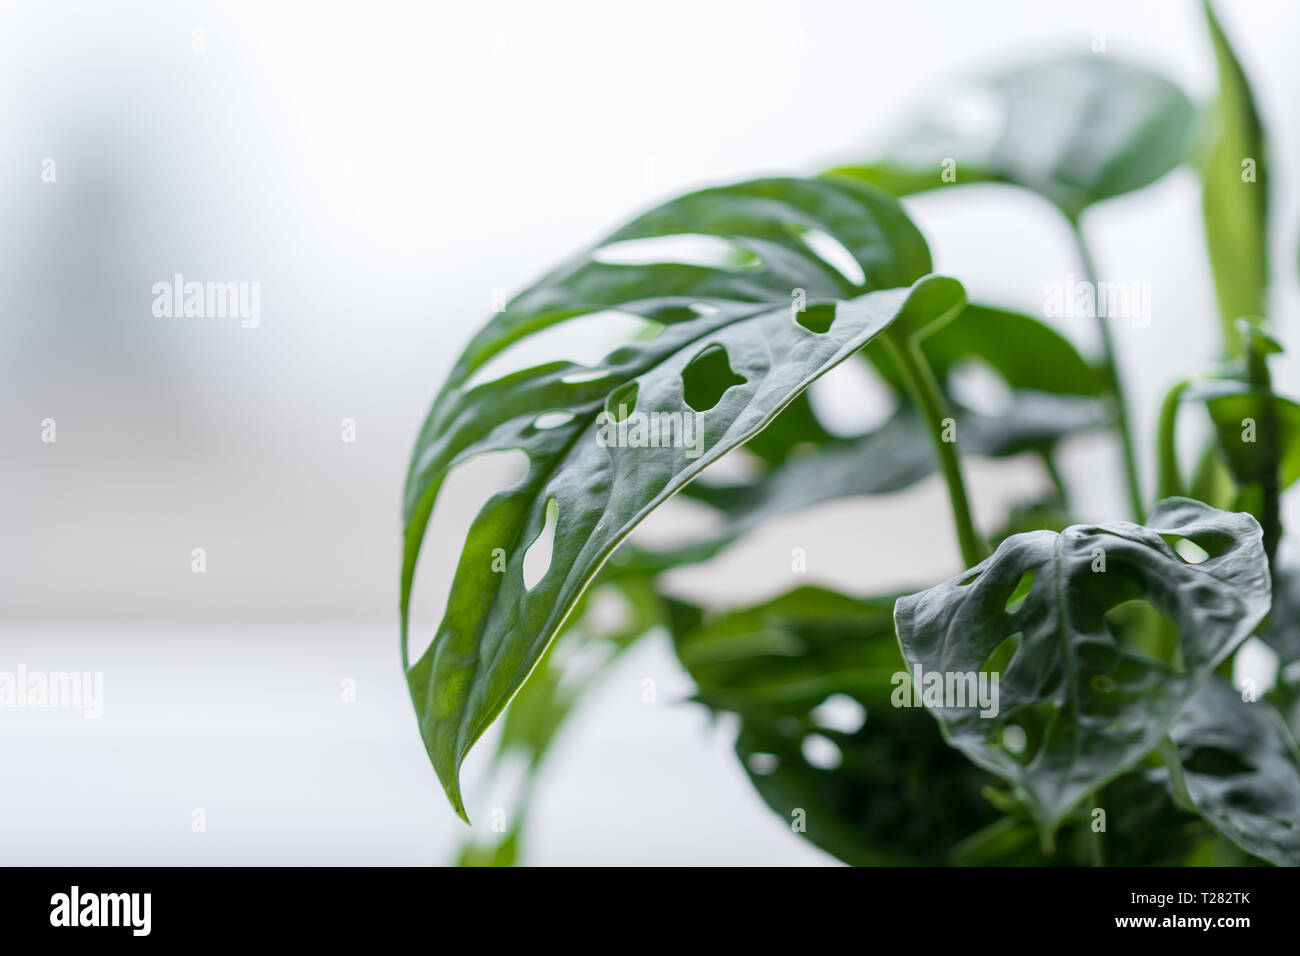 Houseplant - Philodendron monstera deliciosa - cheese plant - highkey - Stock Image